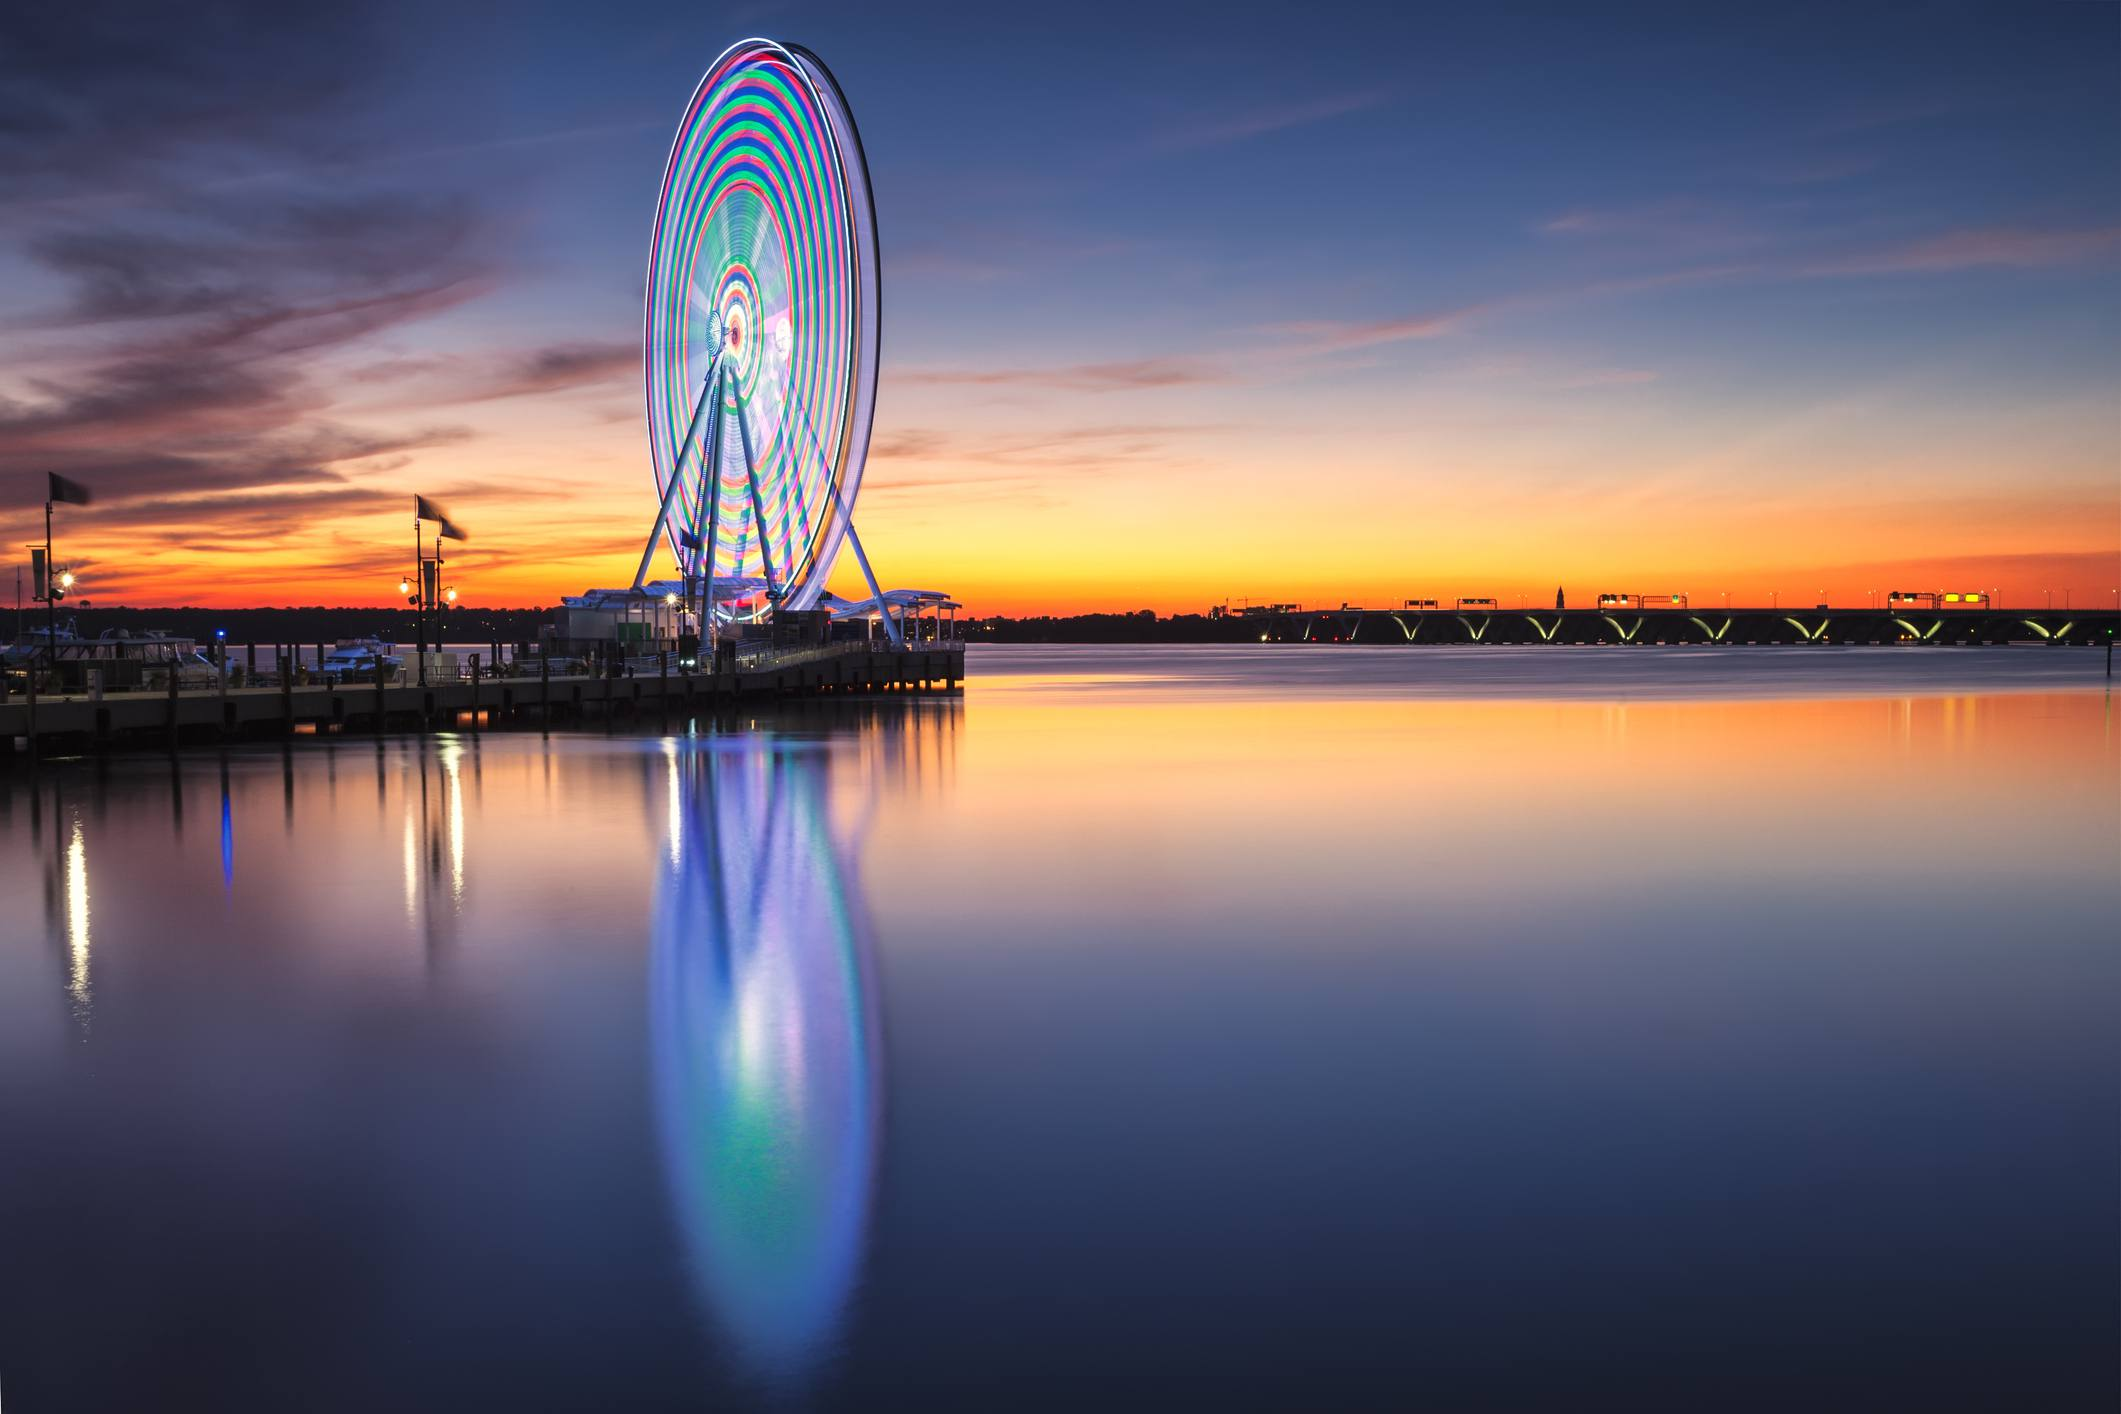 Ferris wheel on the Potomac at National Harbor